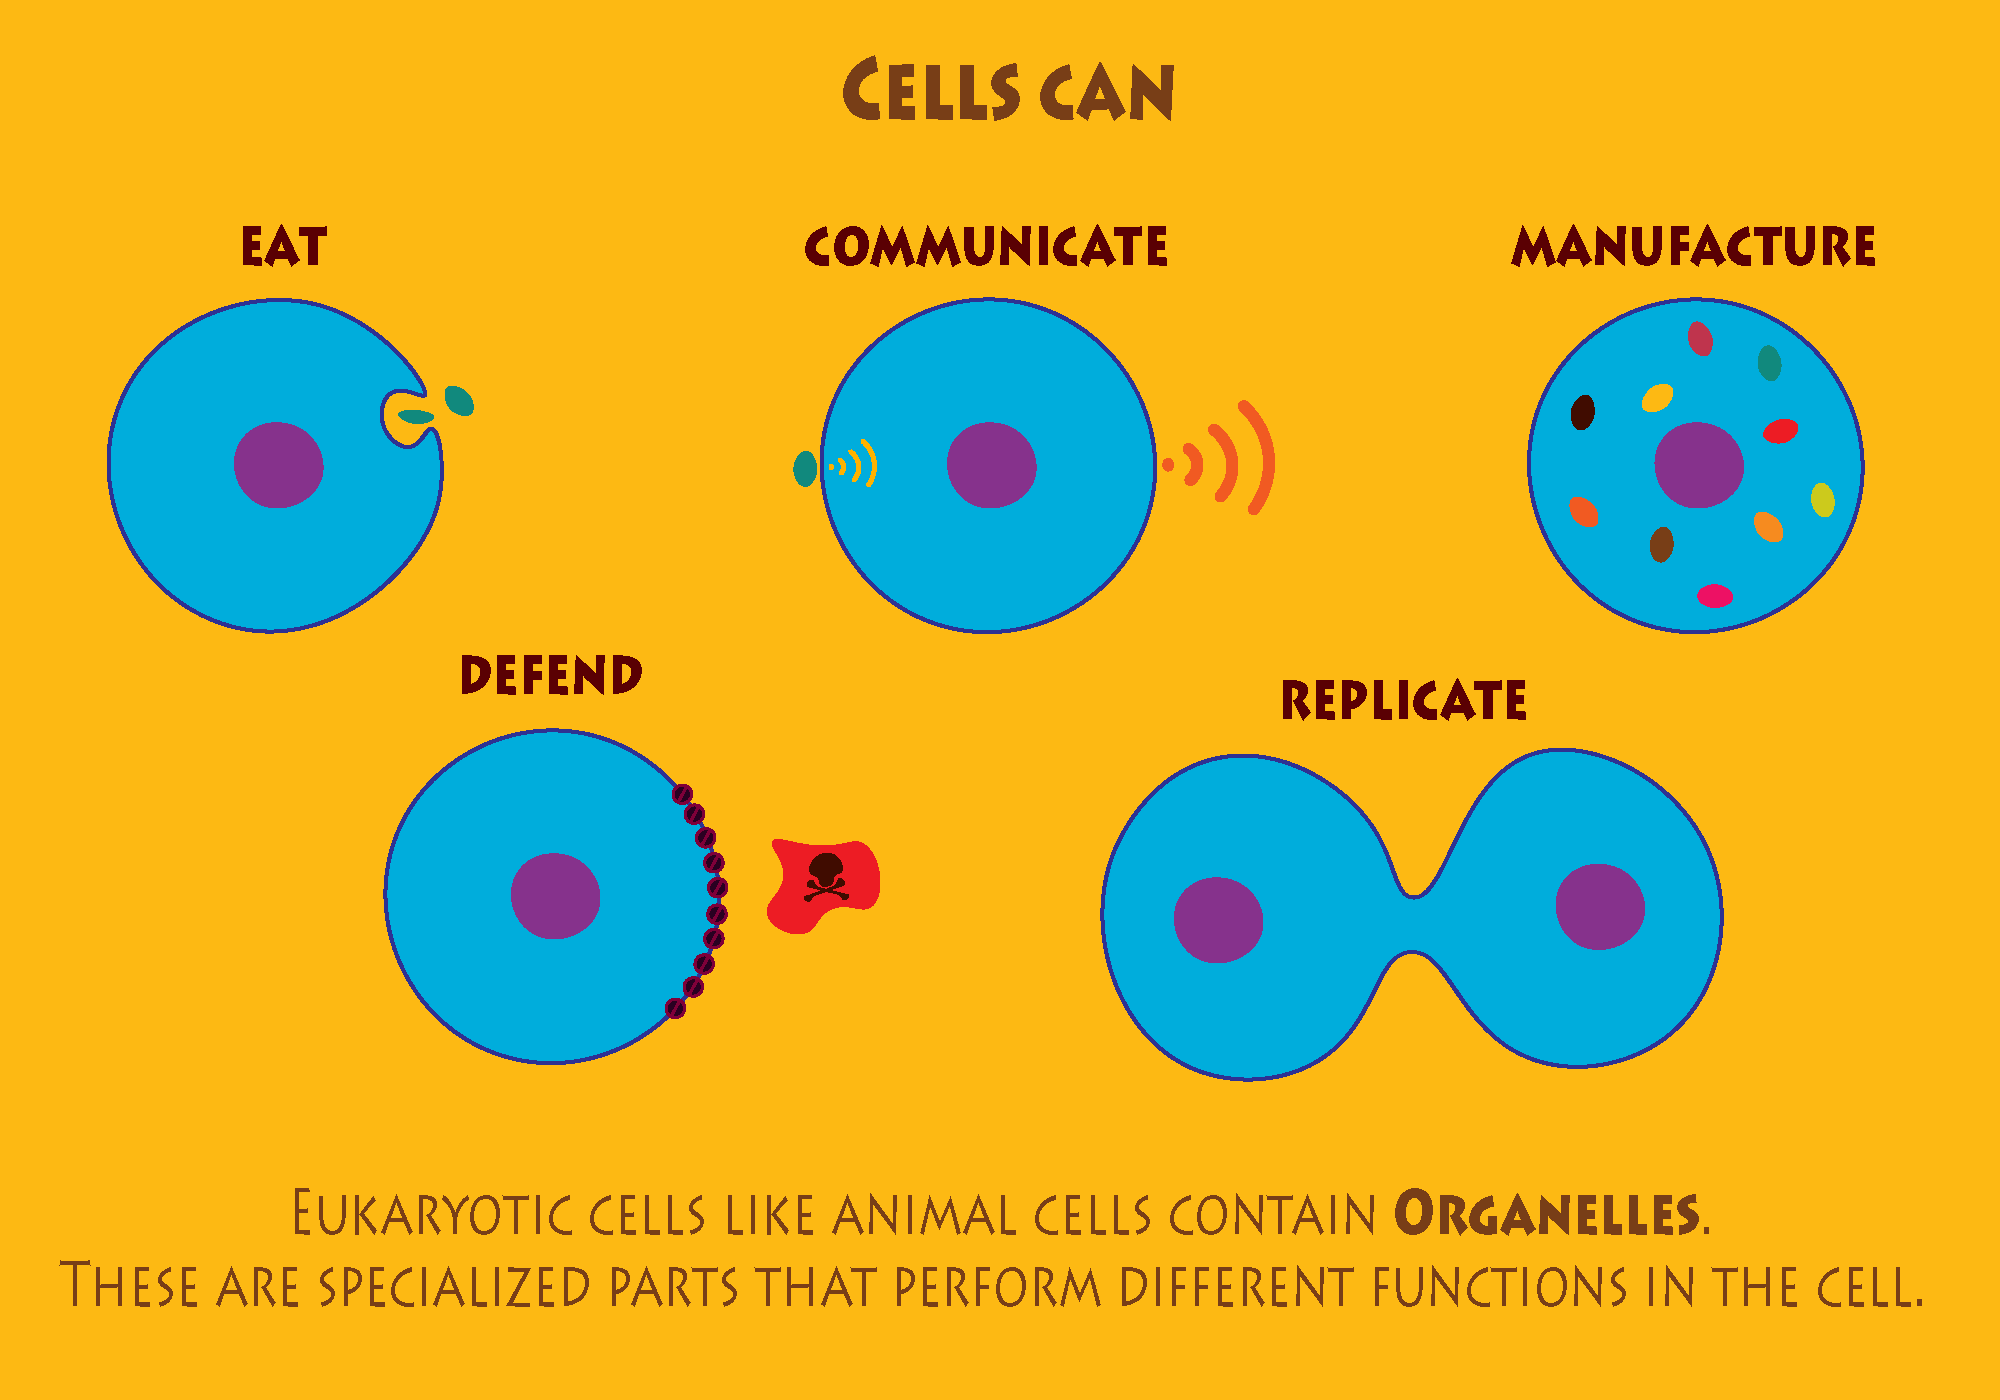 What Cells can do